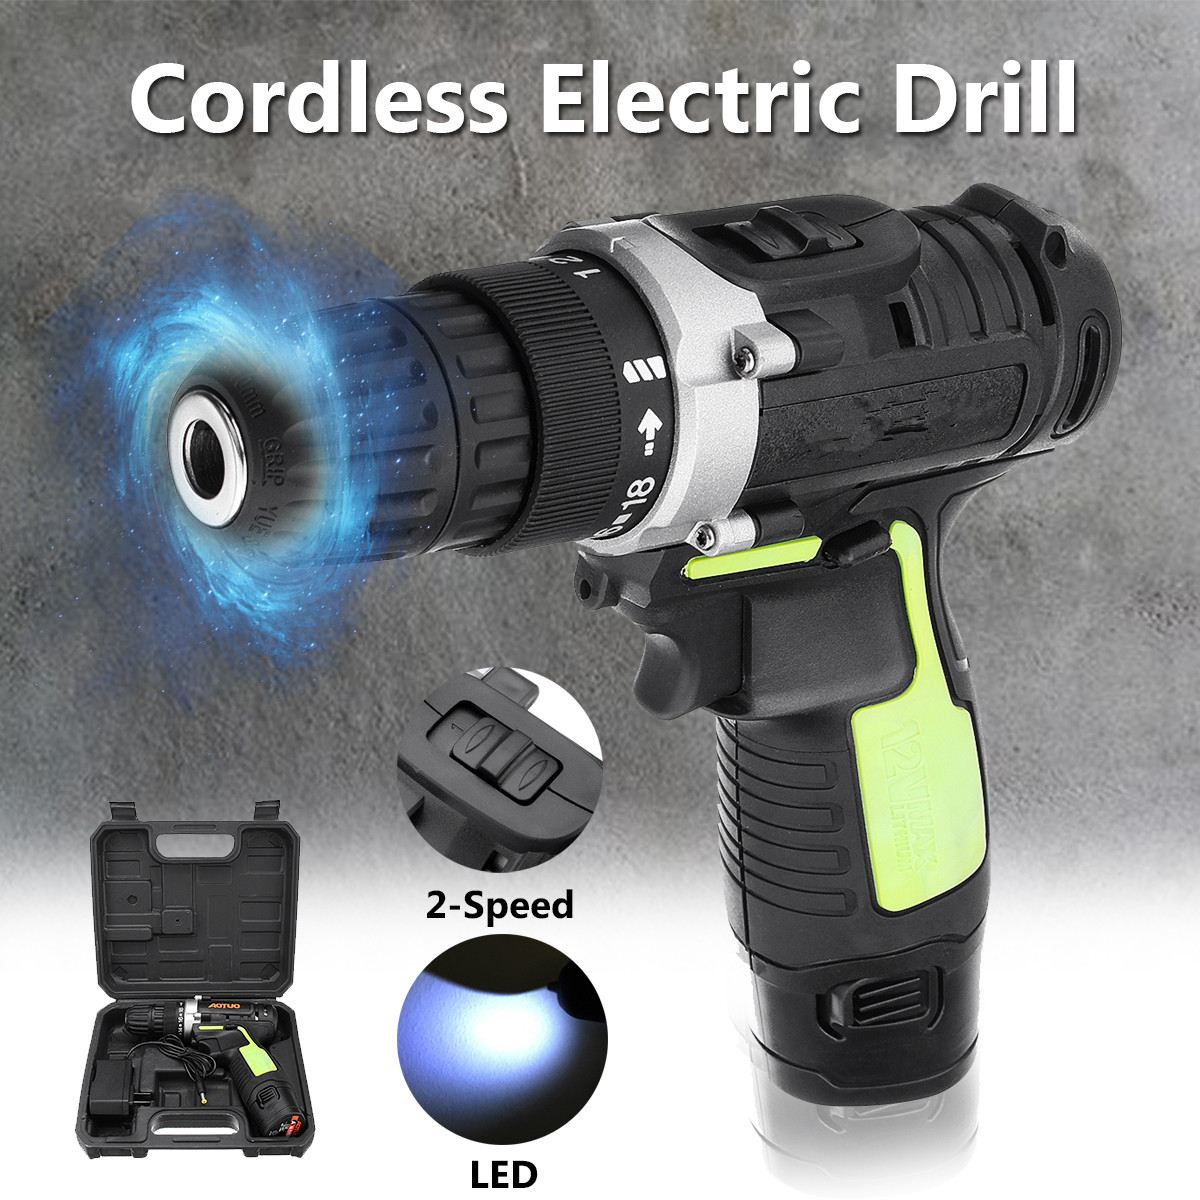 12V Battery Rechargeable Cordless Drill Electric Screwdriver Power Driver 3/8'' With LED Light Drill DIY Woodworking Power Tools